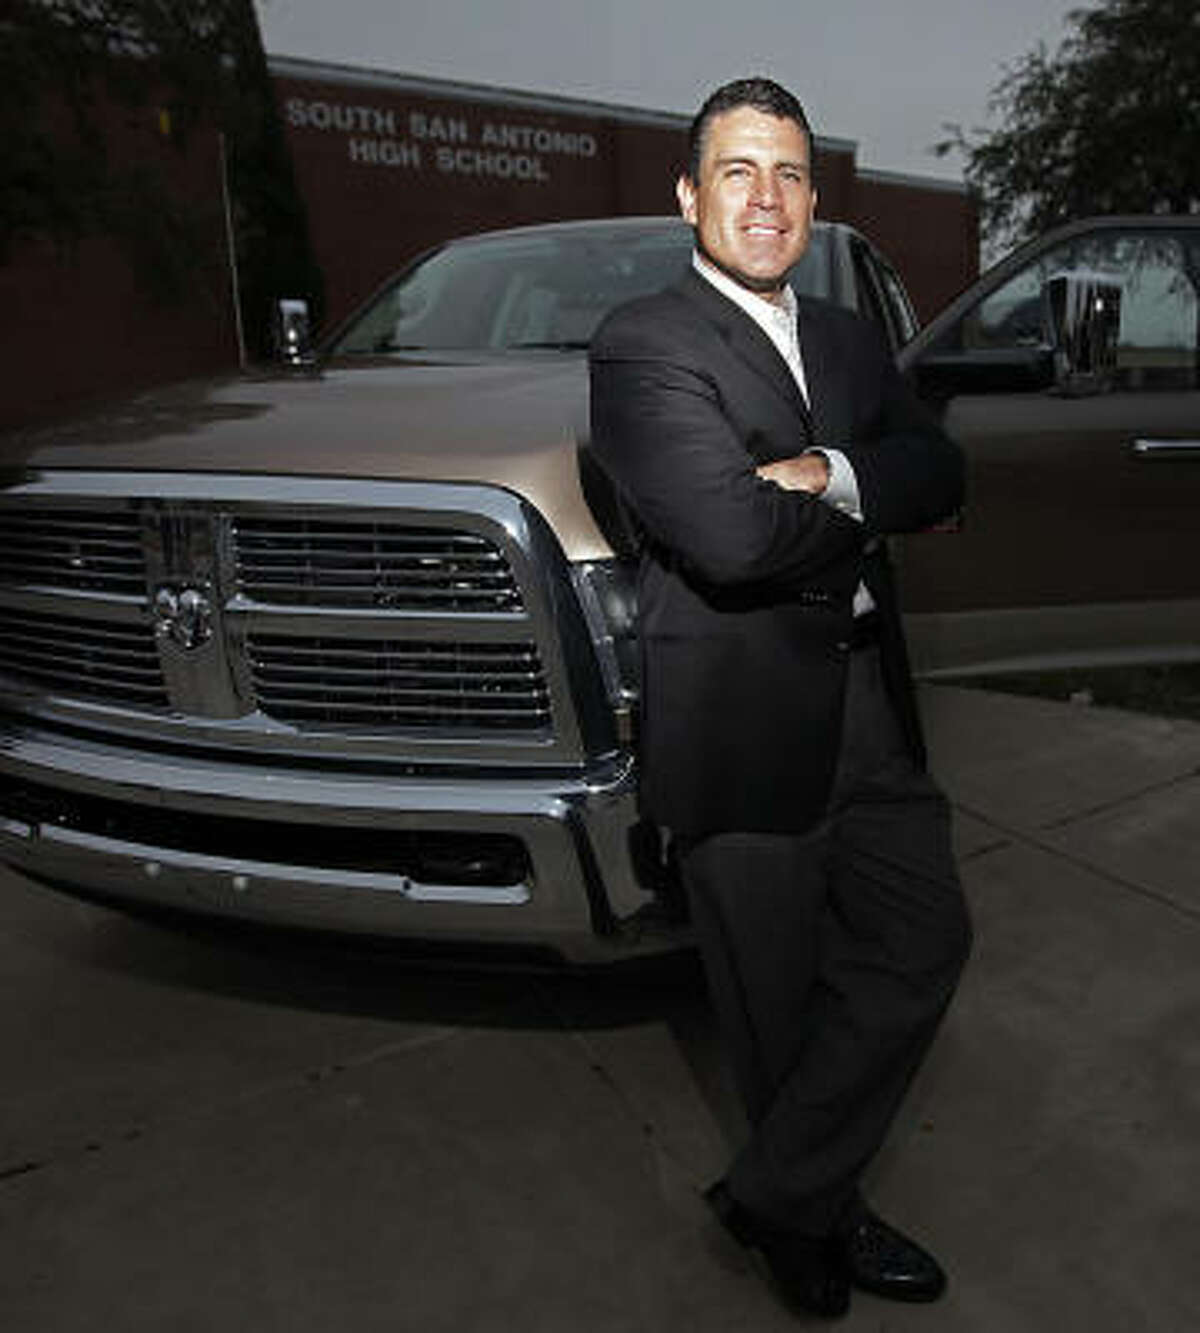 Fred Diaz is the new CEO of the Ram (formerly Dodge Ram) truck brand. He is a 20-year Chrysler veteran.